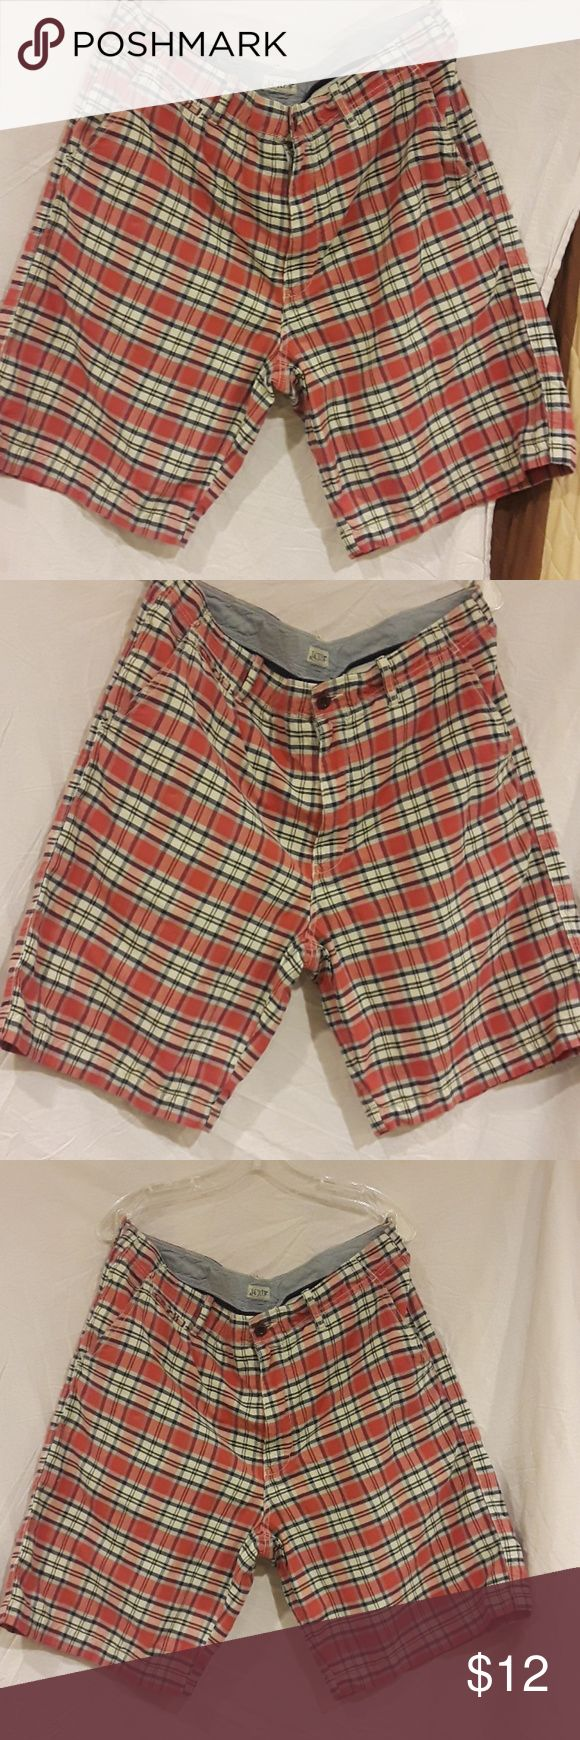 J.CREW MAN SHORT This short in VERY good condition J. Crew Shorts Flat Front